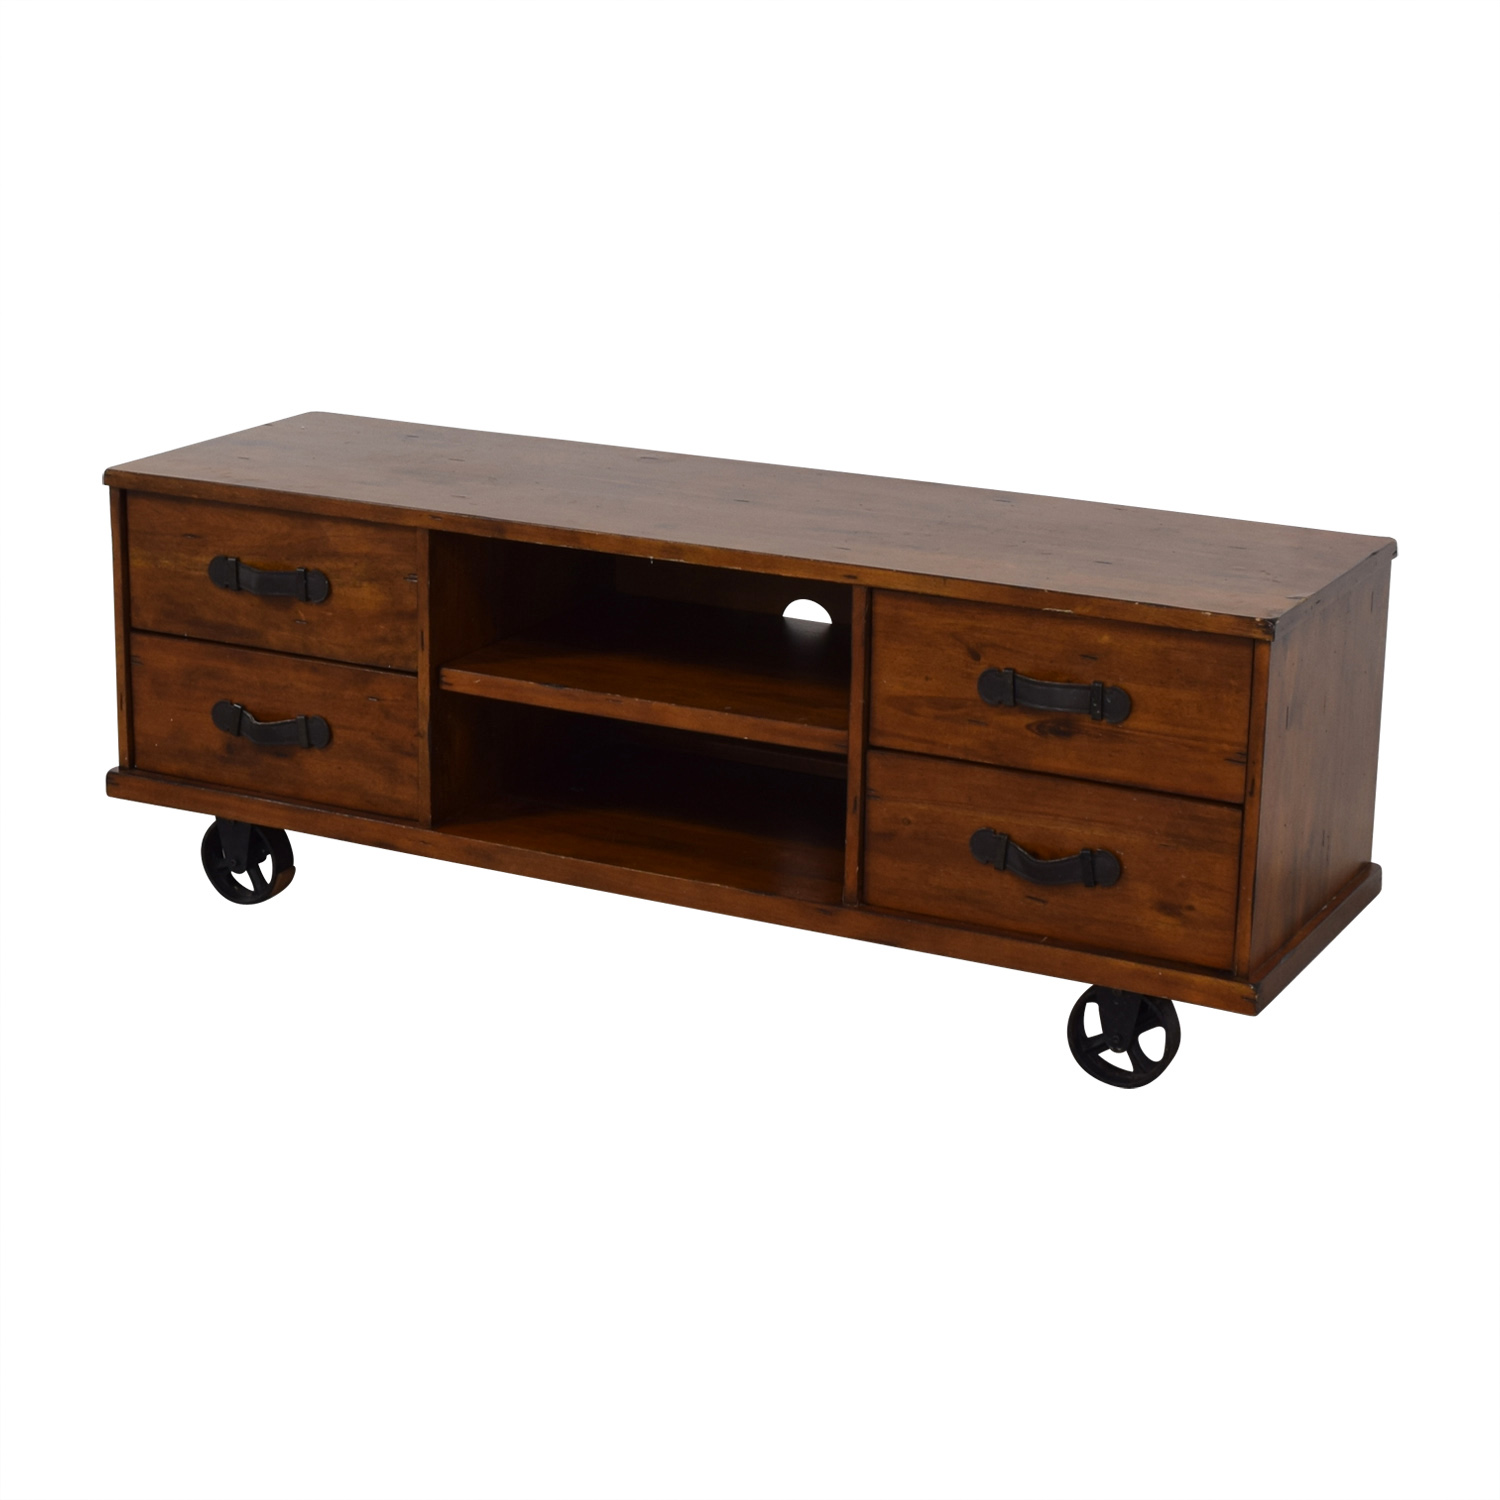 A & G Merch A & G Merch Wood Four-Drawer Media Console for sale